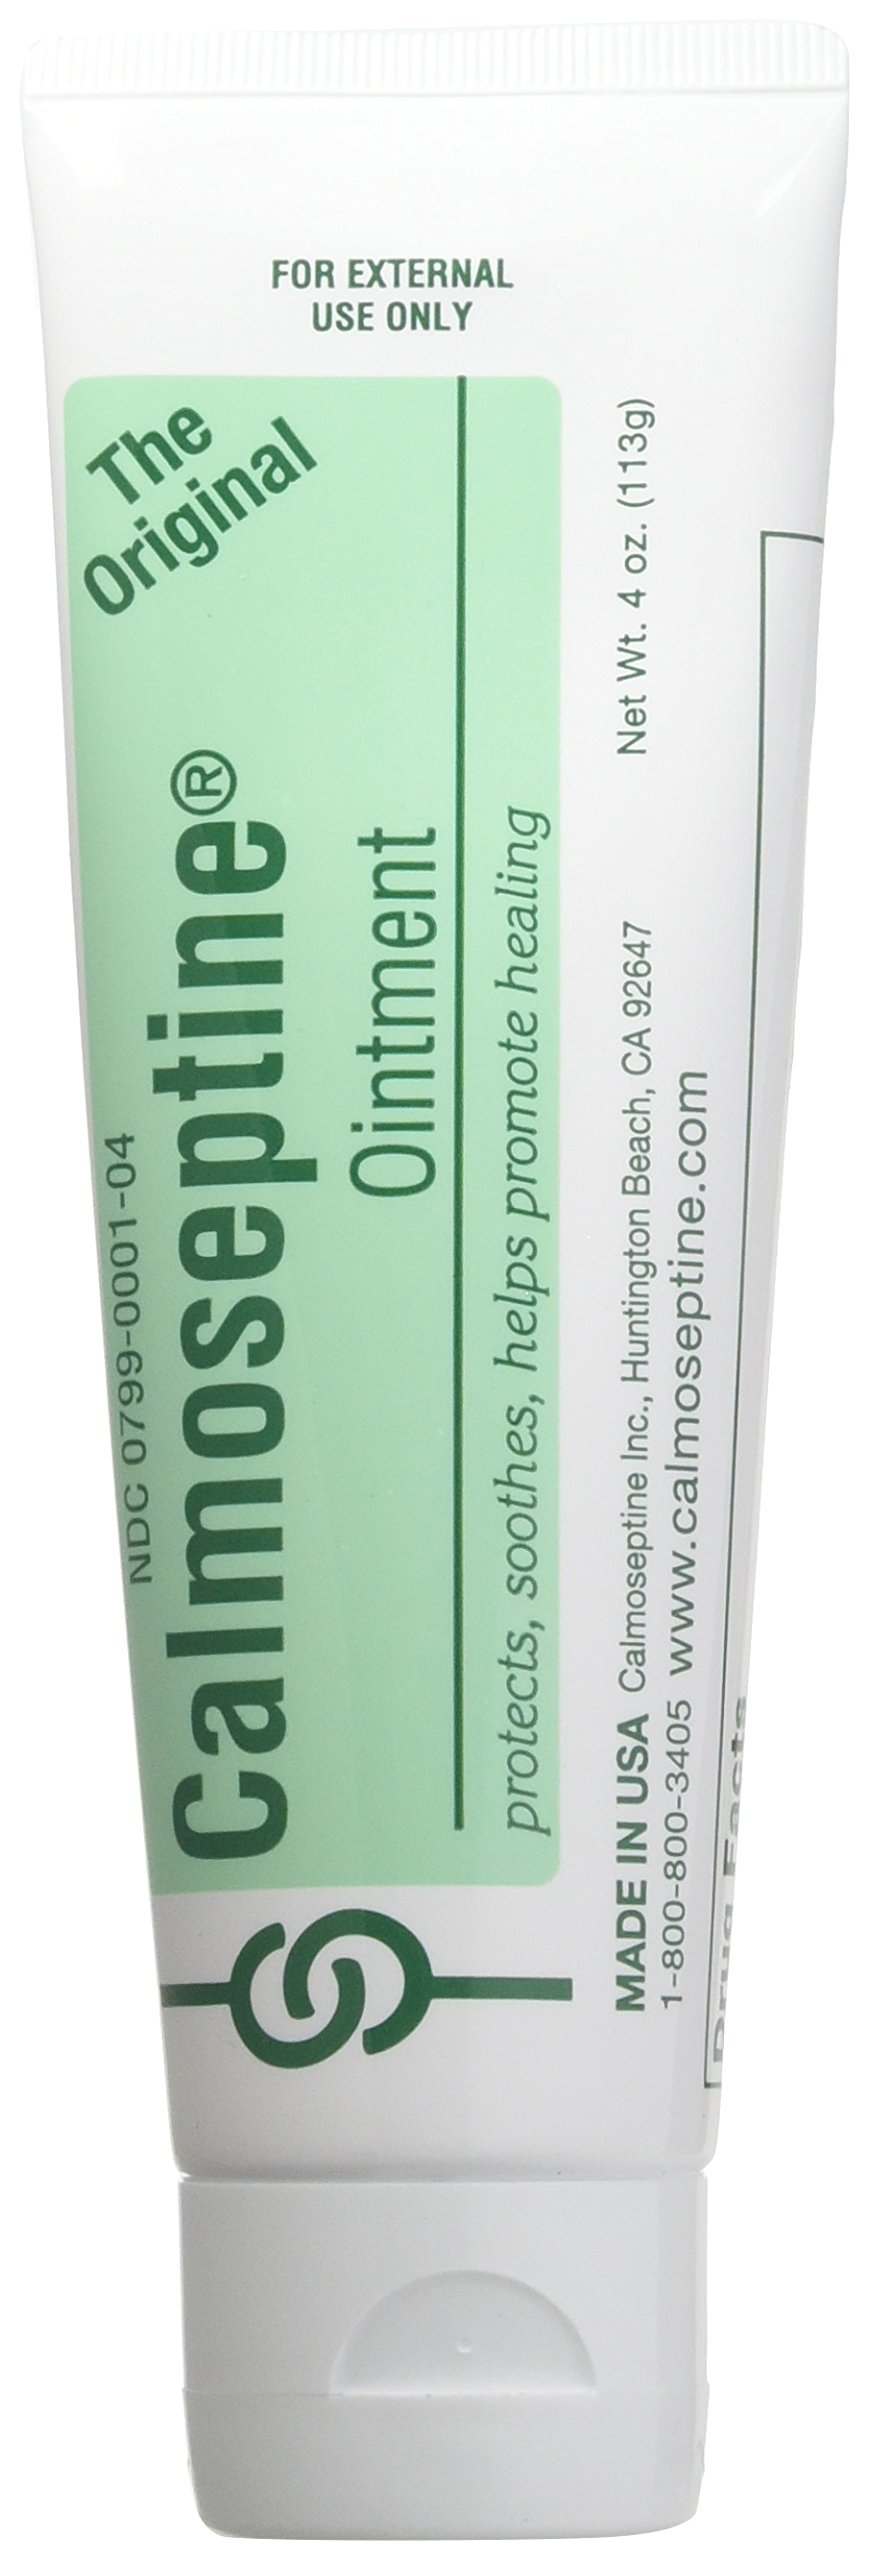 Calmoseptine Ointment Tube 4 Oz (3 Pack) by Calmoseptine by Calmoseptine